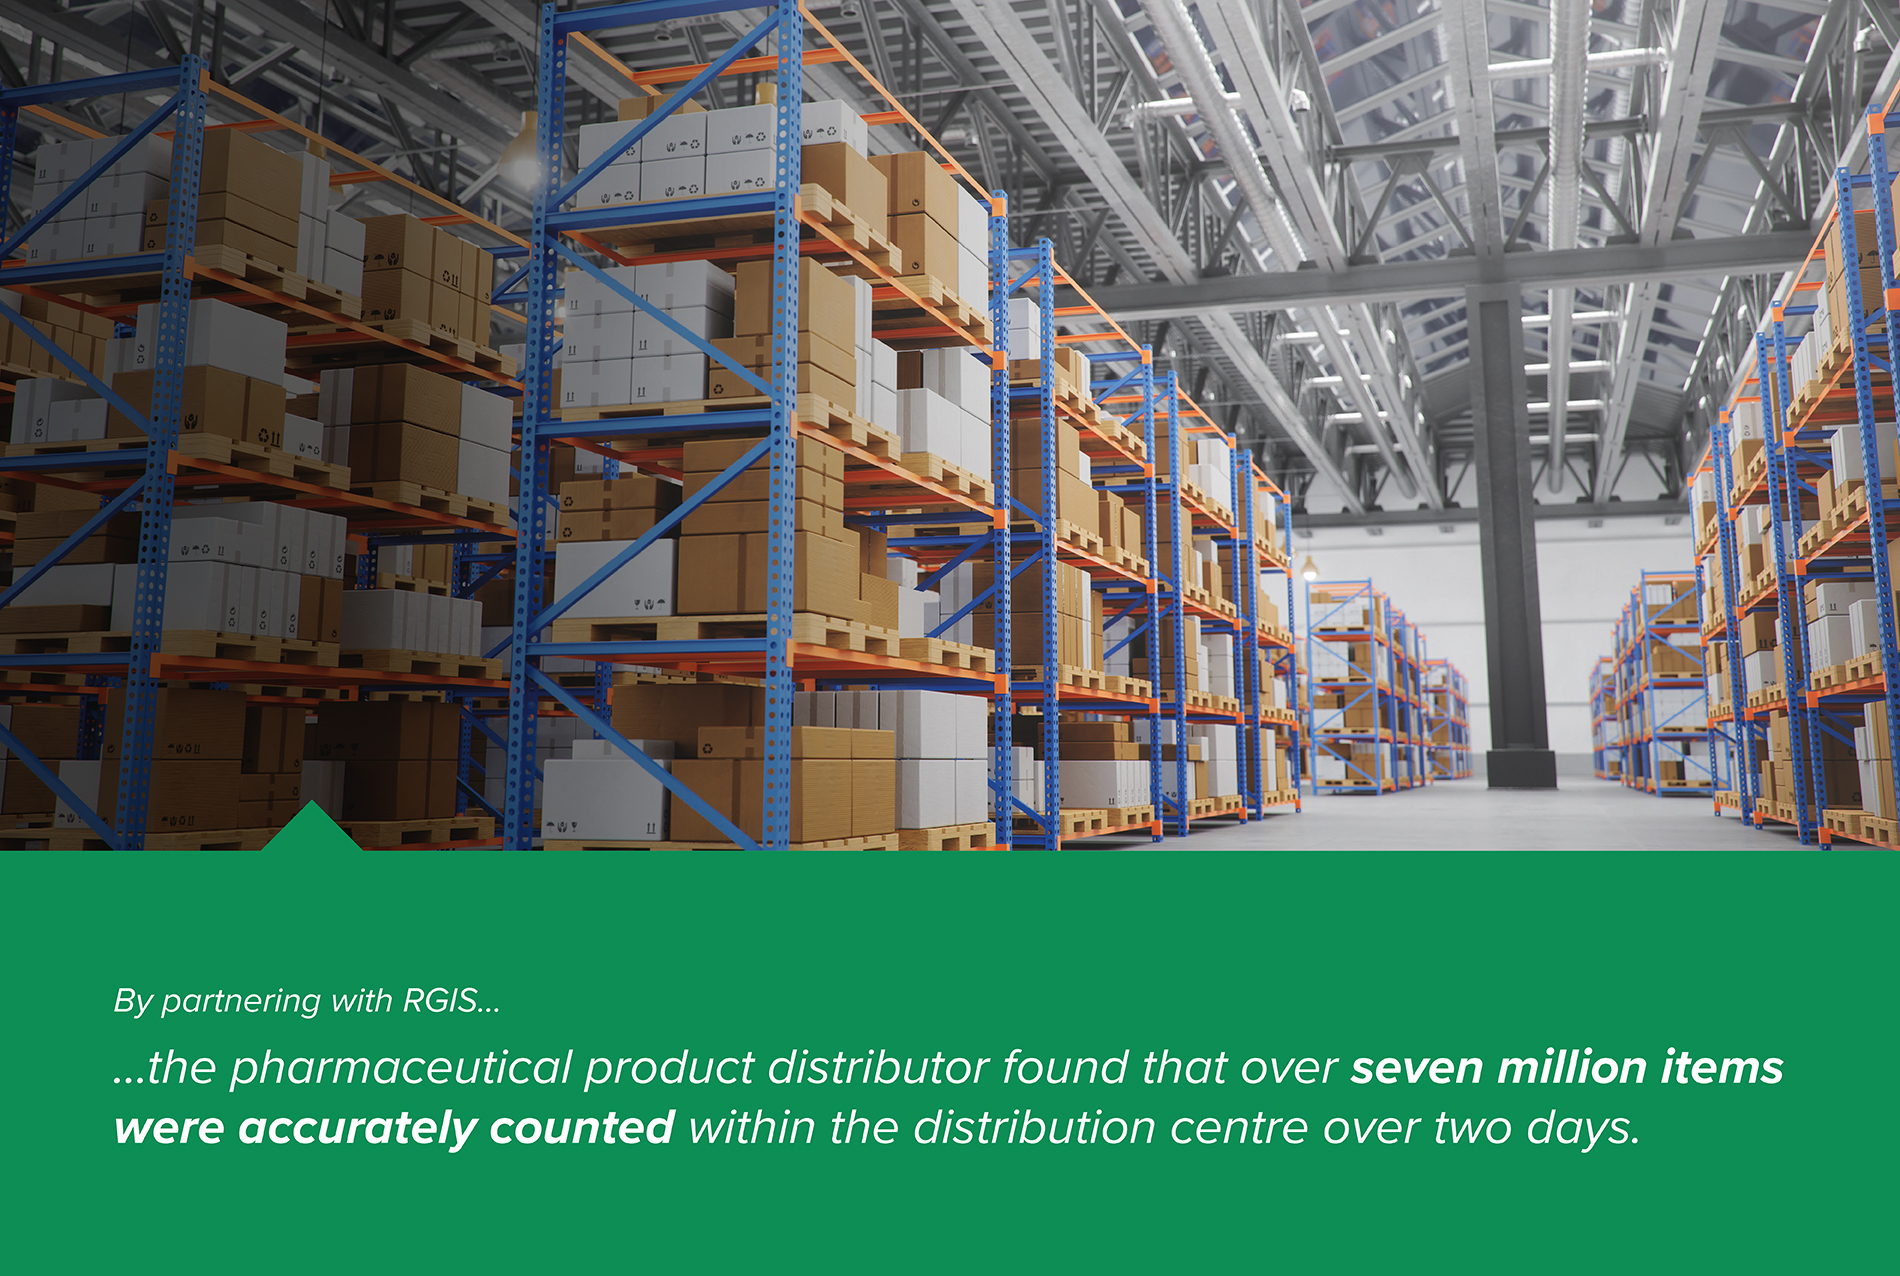 Pharmaceutical Products Distribution Centre Count